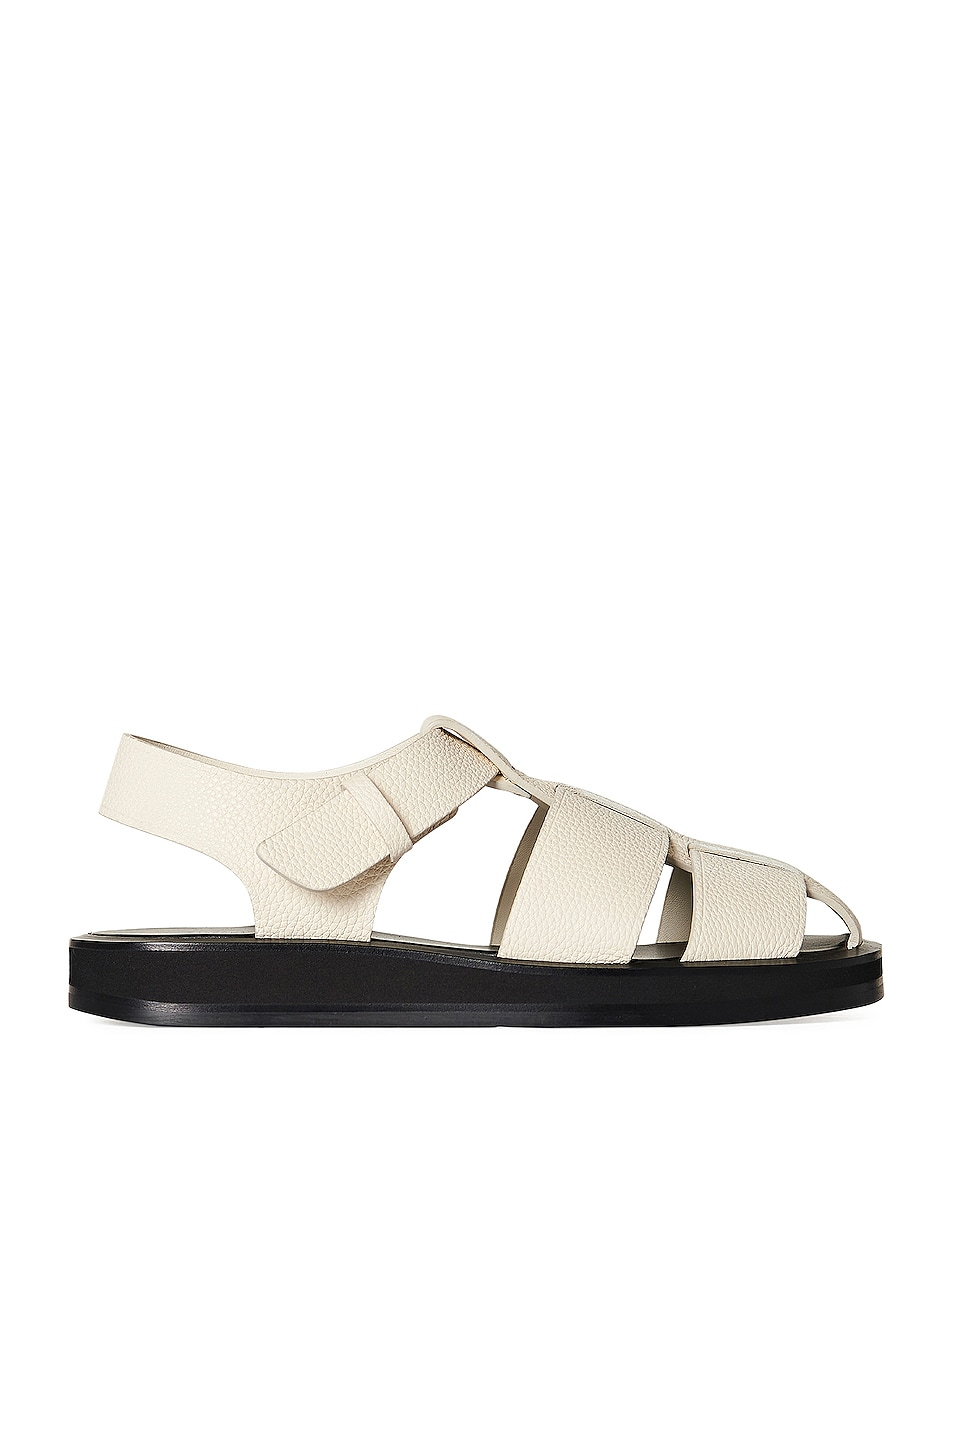 Image 1 of The Row Fisherman Leather Sandals in Ivory